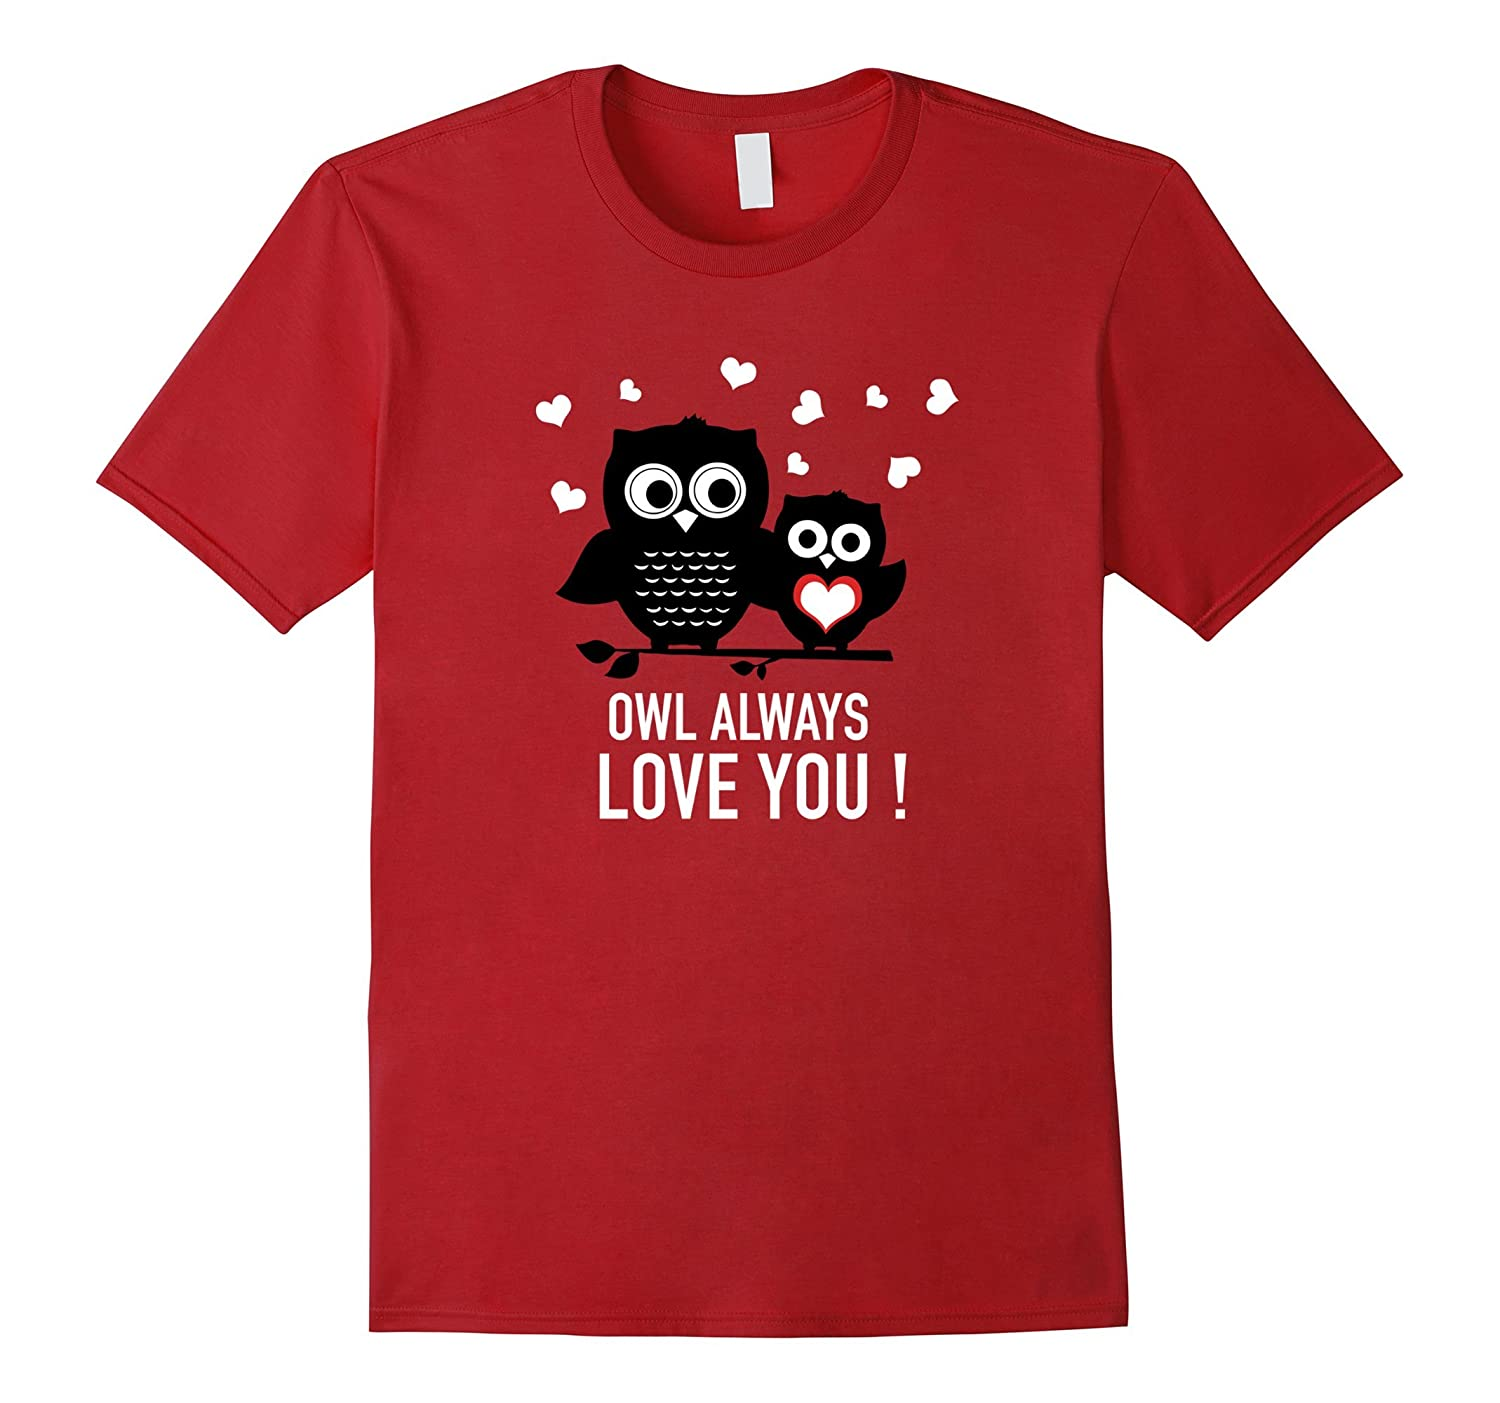 Cute Valentines Day T Shirts for Boys and Girls